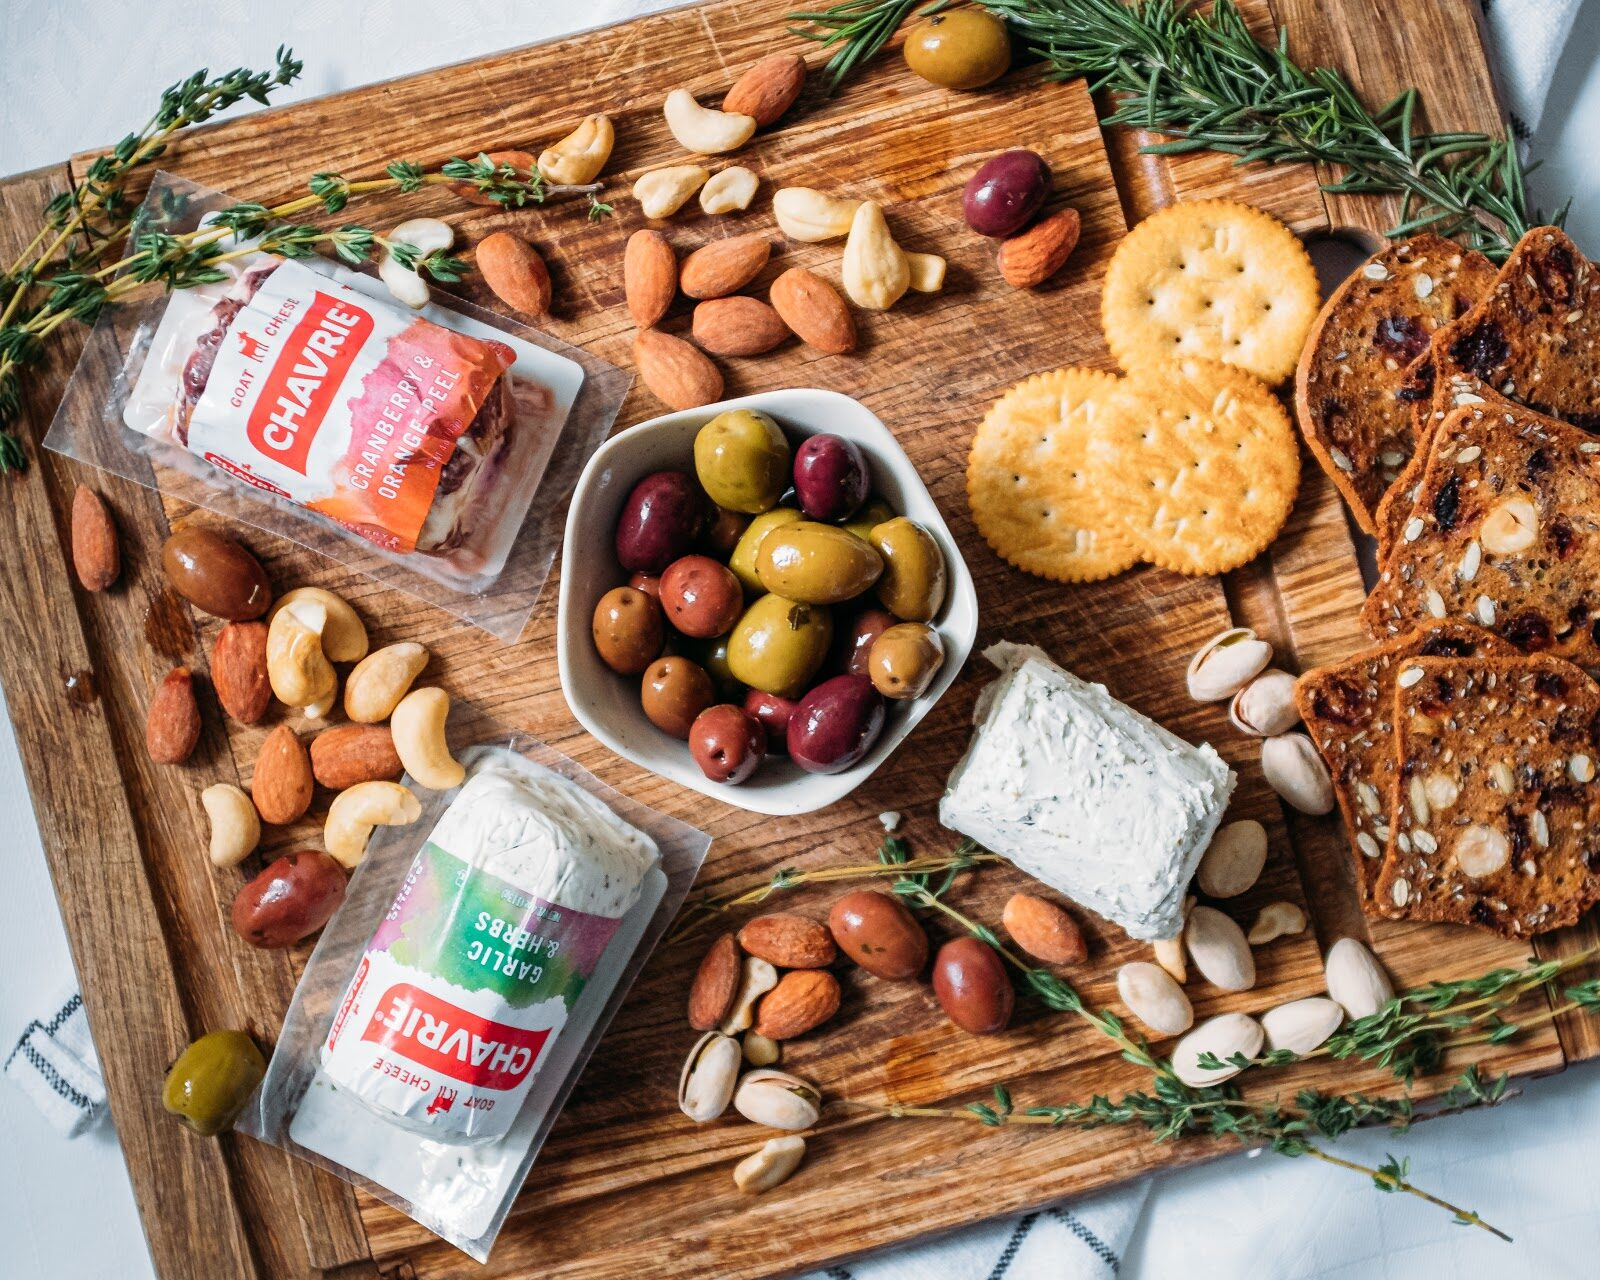 cheese board with chavrie garlic and herbs cranberry & orange peel, crackers, nuts, olives